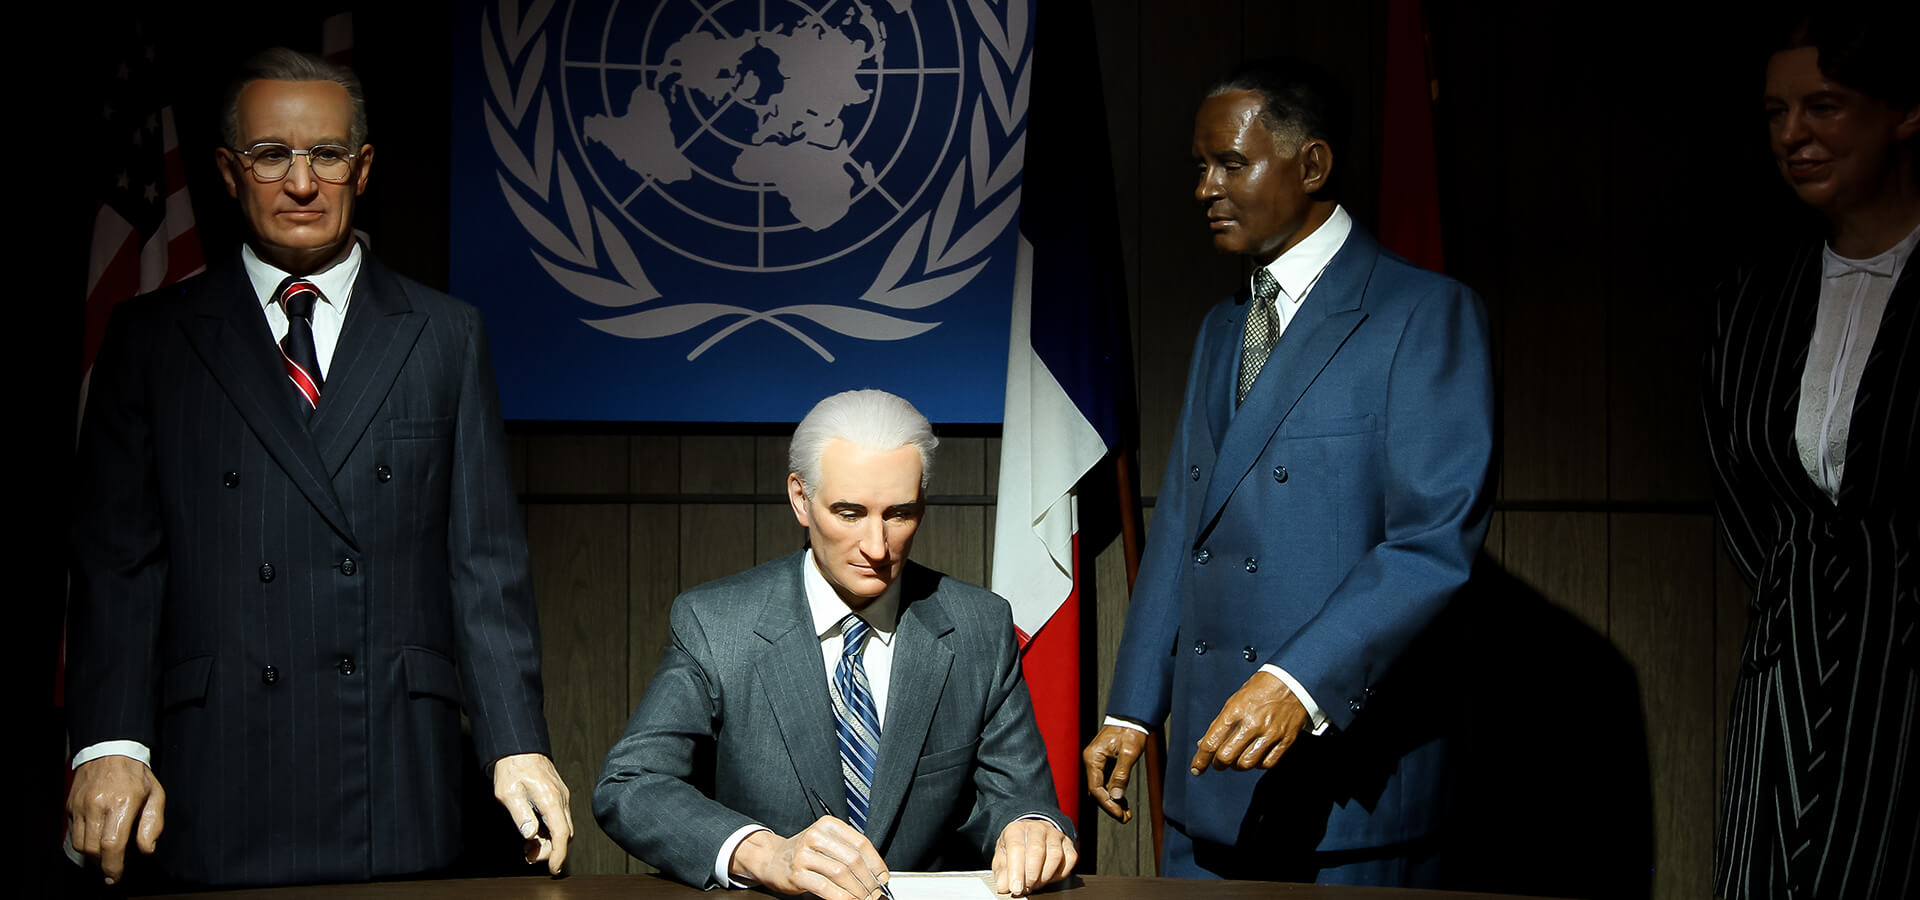 Harry S. Truman and the signing the United Nations Charter.